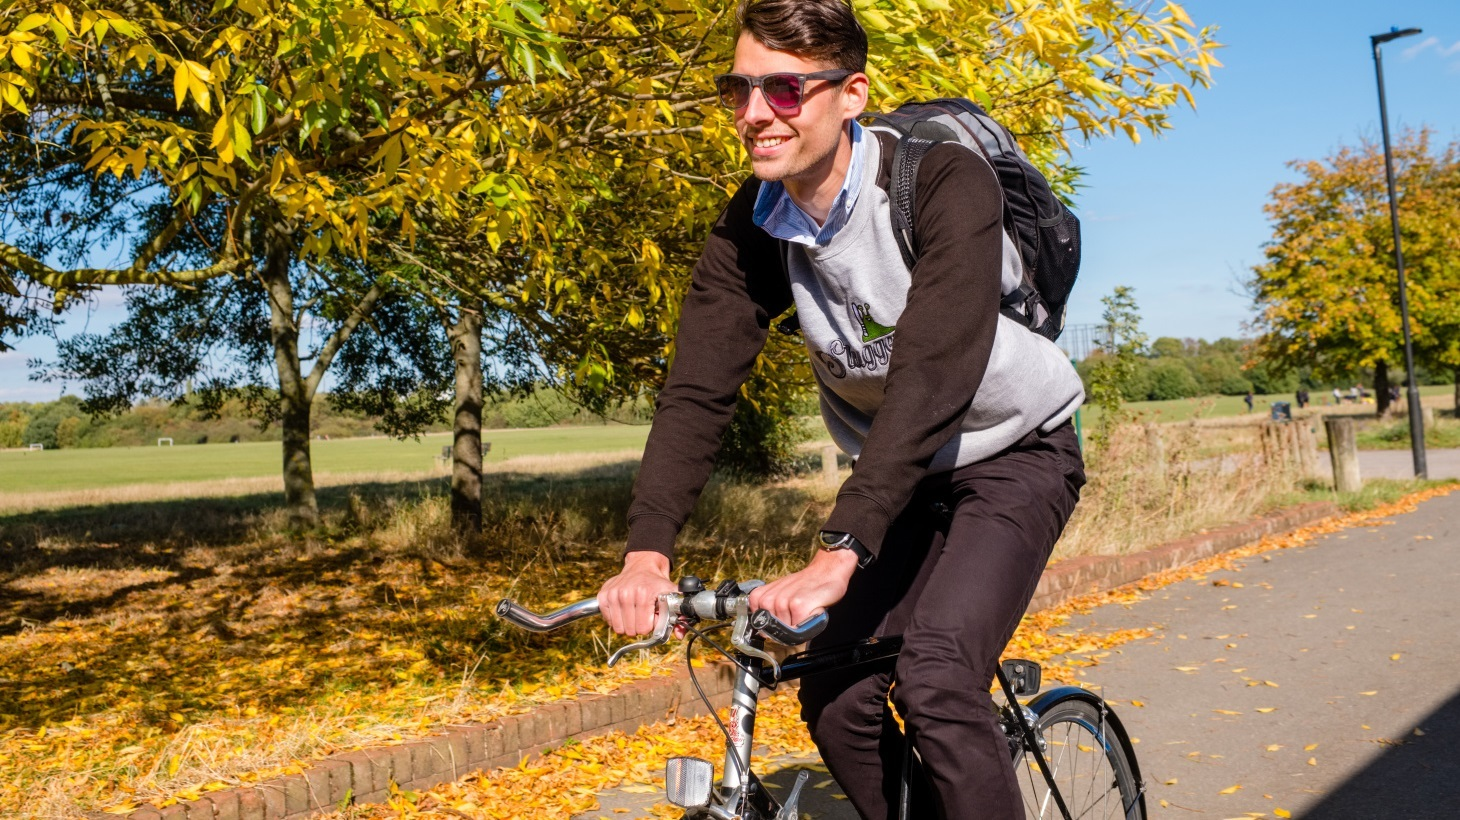 Commute by bike with confidence - Sustrans.org.uk